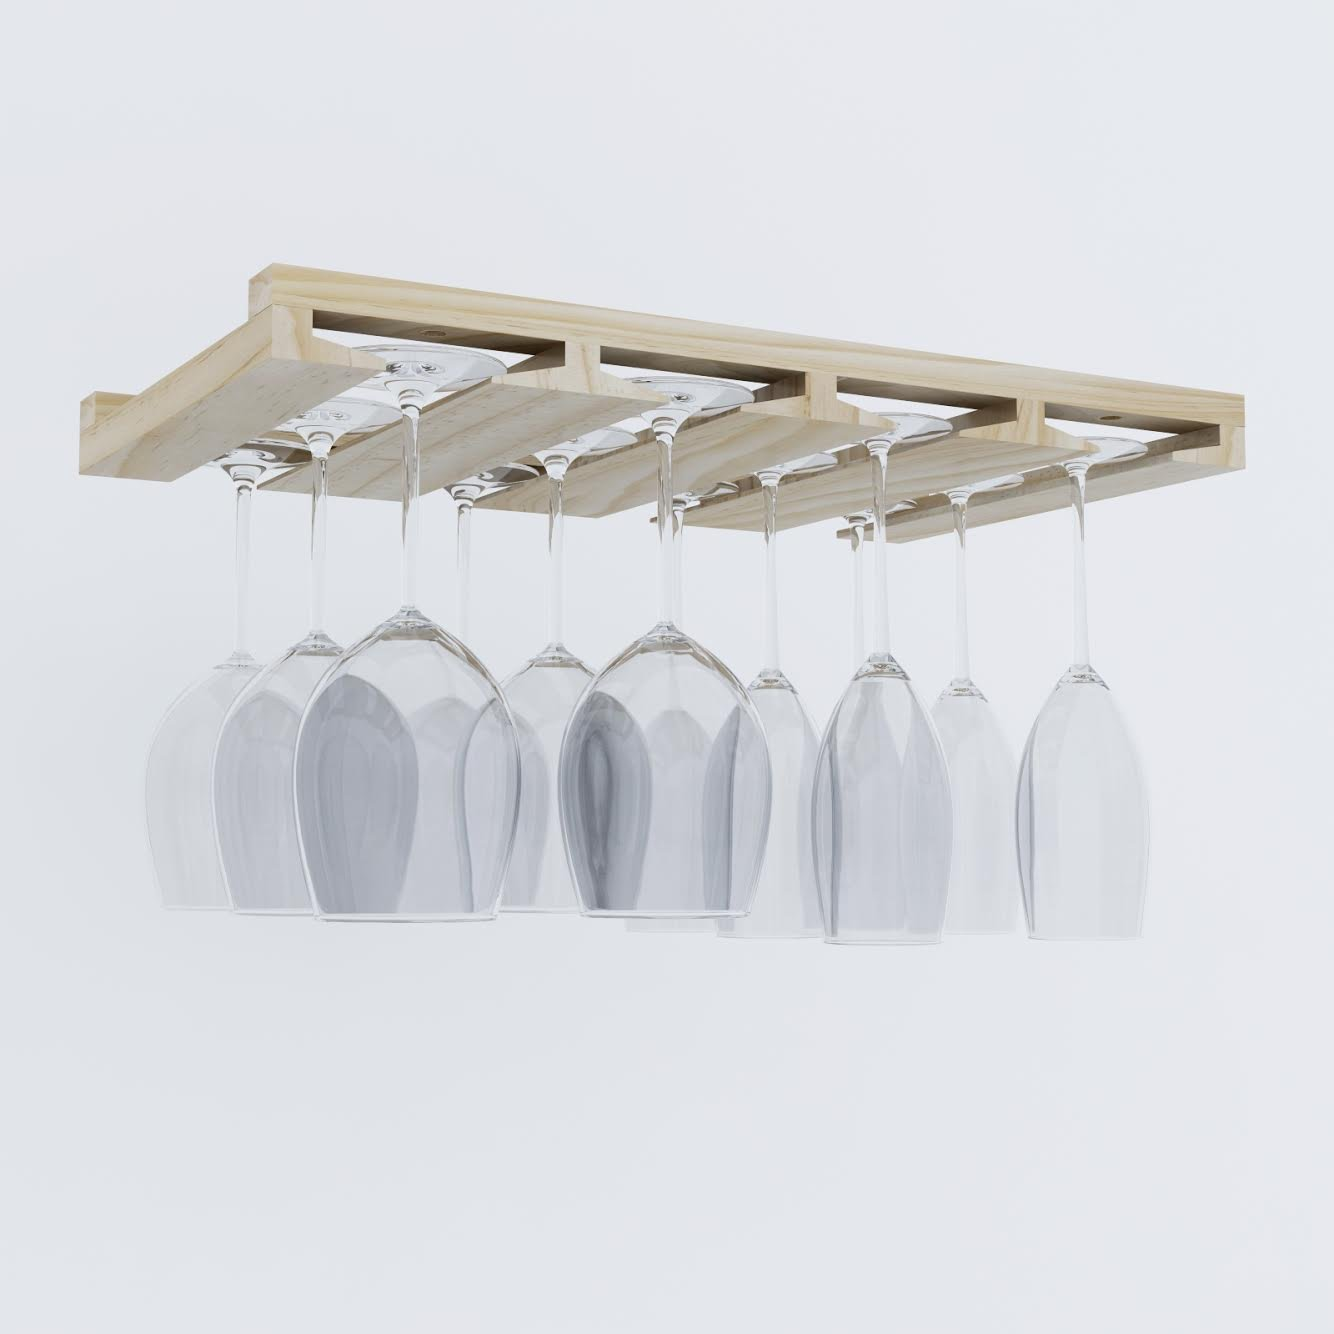 Natural Rustic State Stemware Wine Glass Rack Makes Dull Kitchens or Bar Looks Great Perfectly Fits 6-12 Glasses Under Cabinet Easy to Install with Included Screws Great Hanging Bar Glass Rack